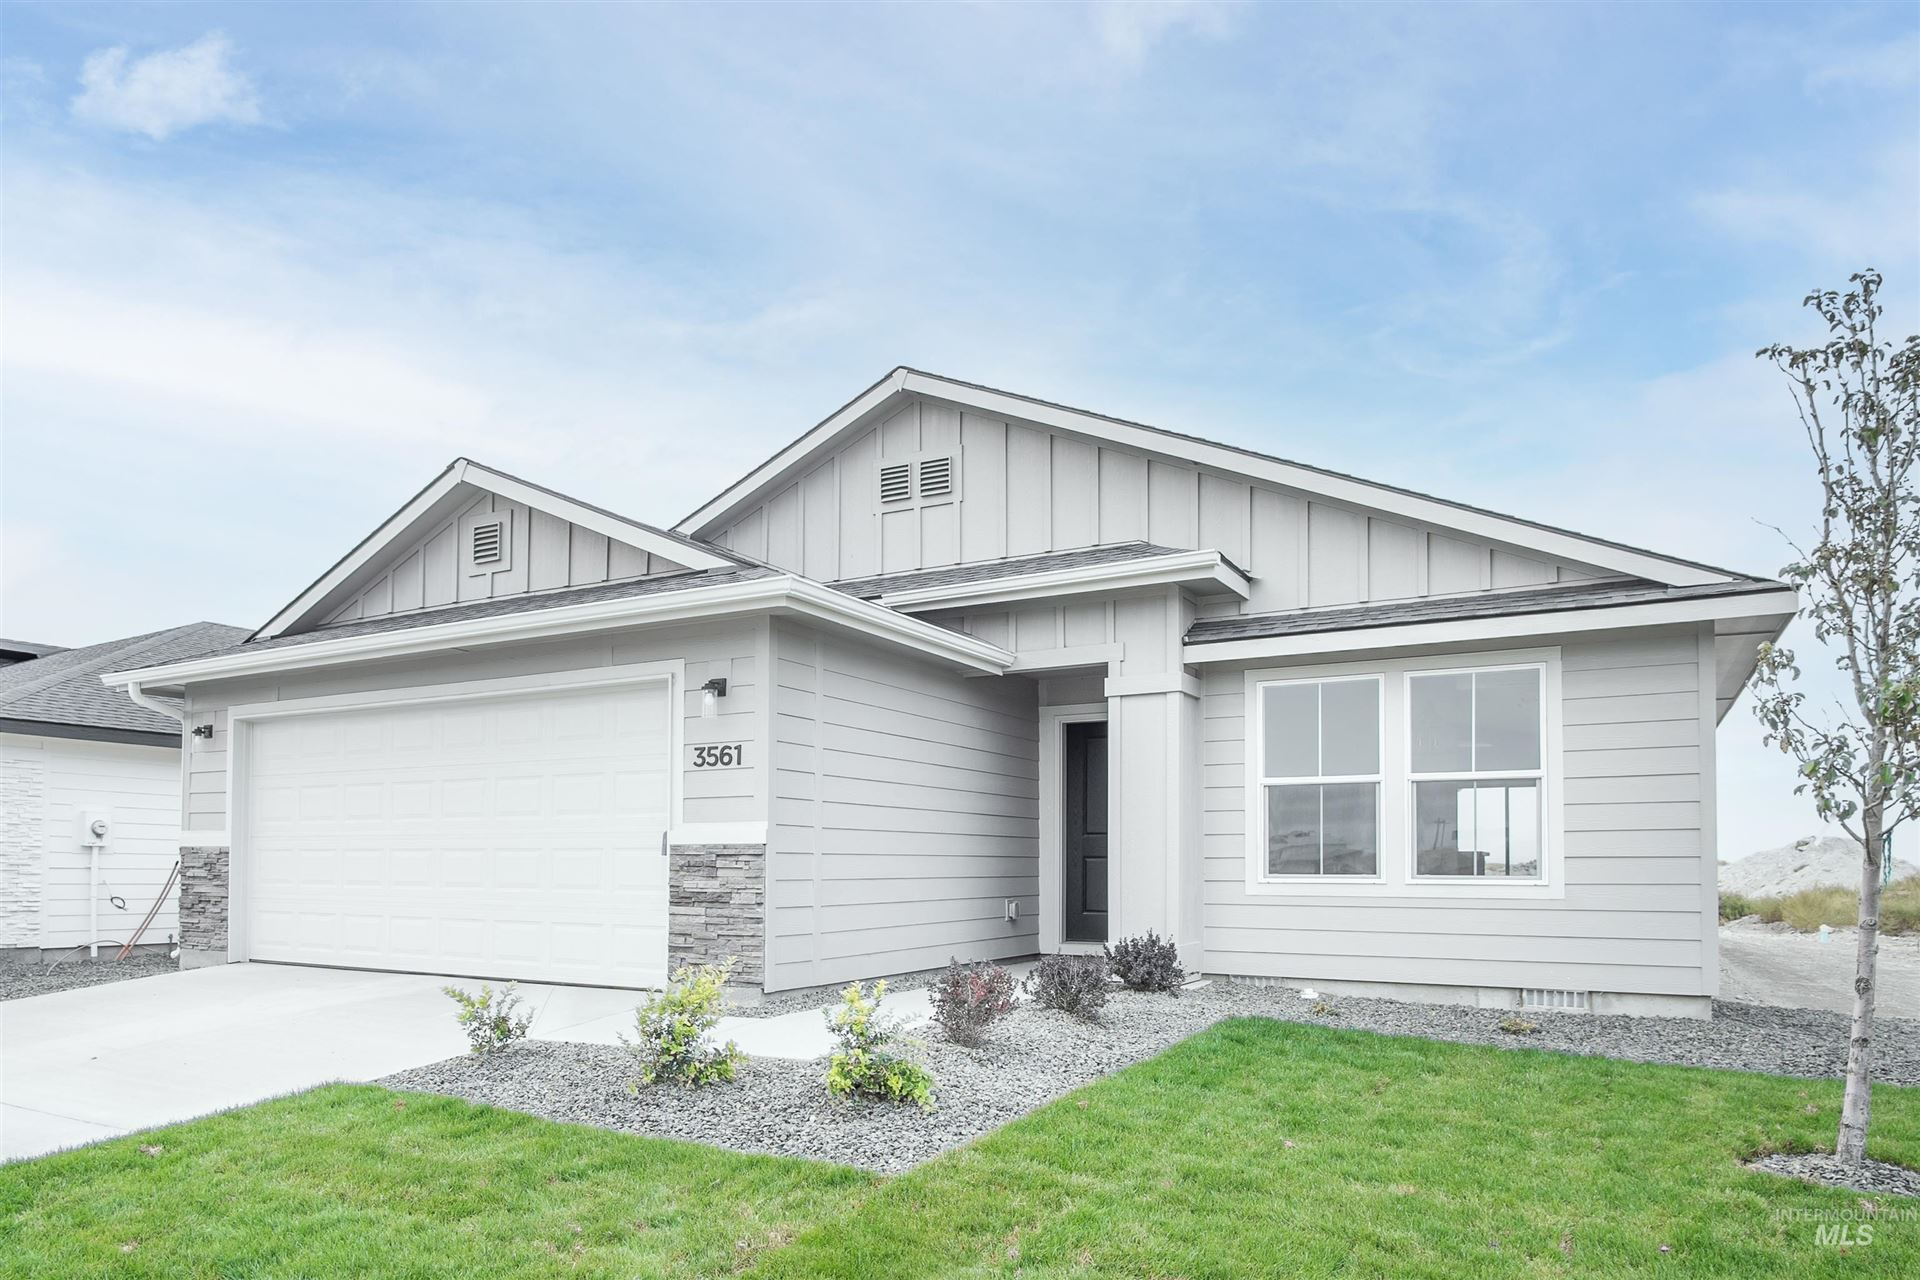 Photo of 3561 W Remembrance Dr, Meridian, ID 83642 (MLS # 98811638)